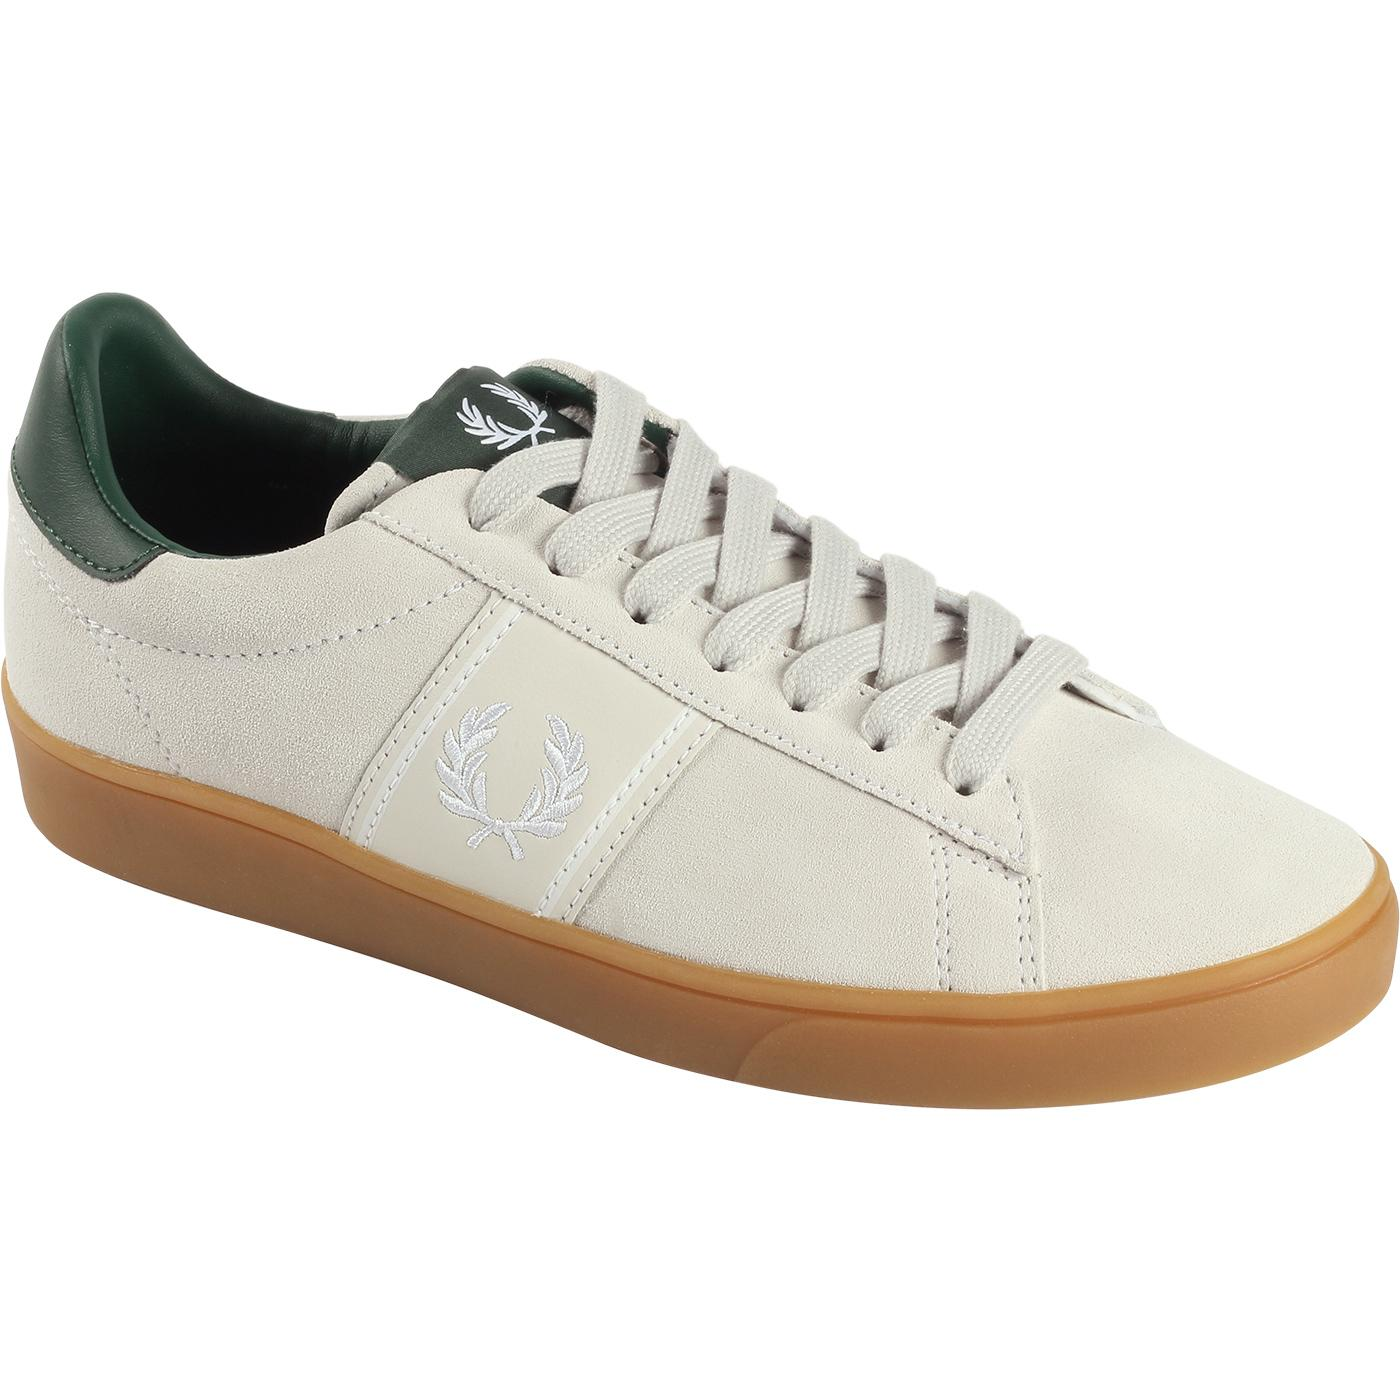 Spencer FRED PERRY Retro 70s Suede Court Trainers